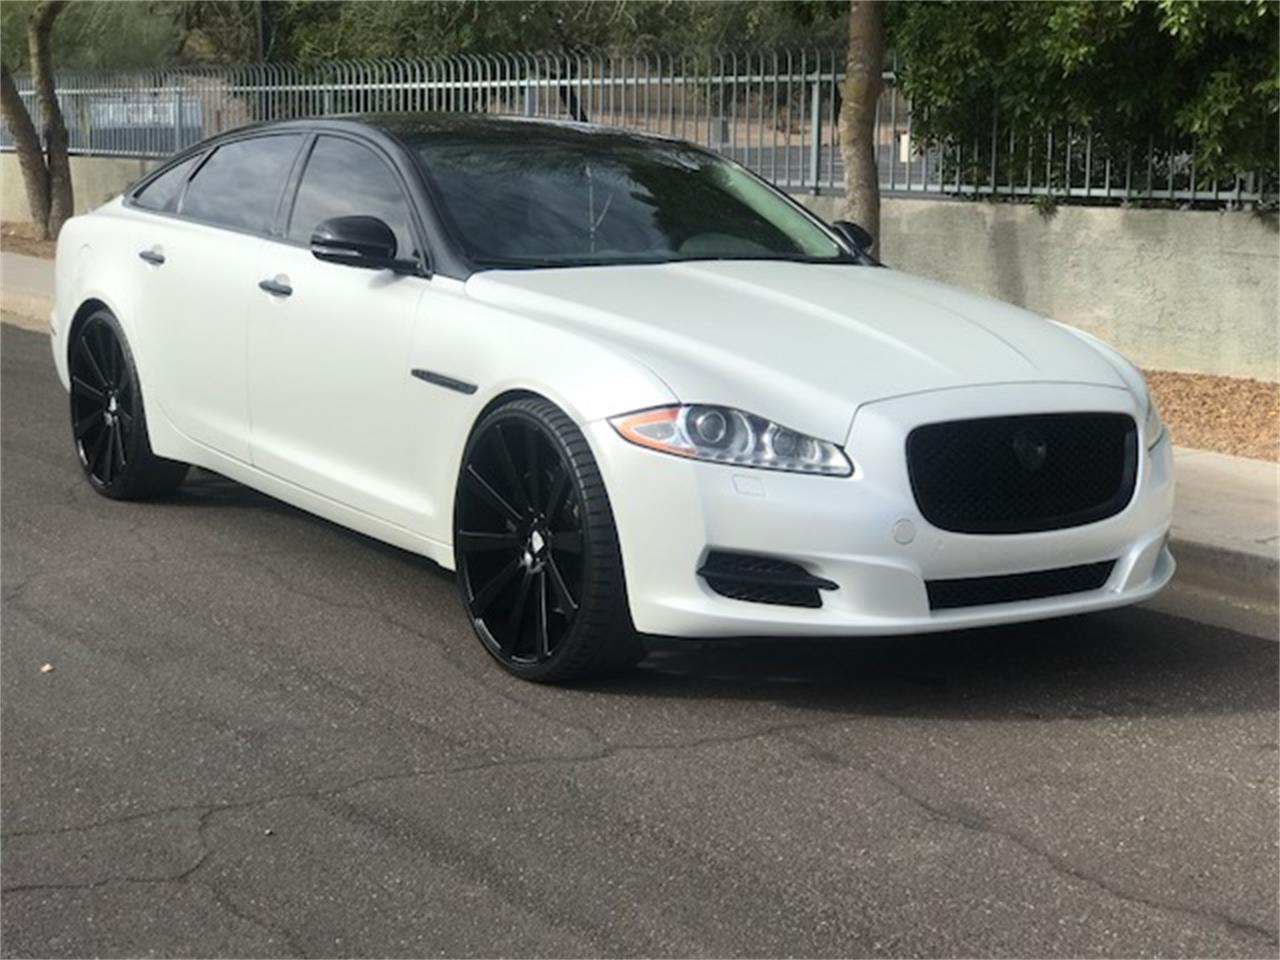 Large Picture of 2011 XJL Supercharged Auction Vehicle - MOE8